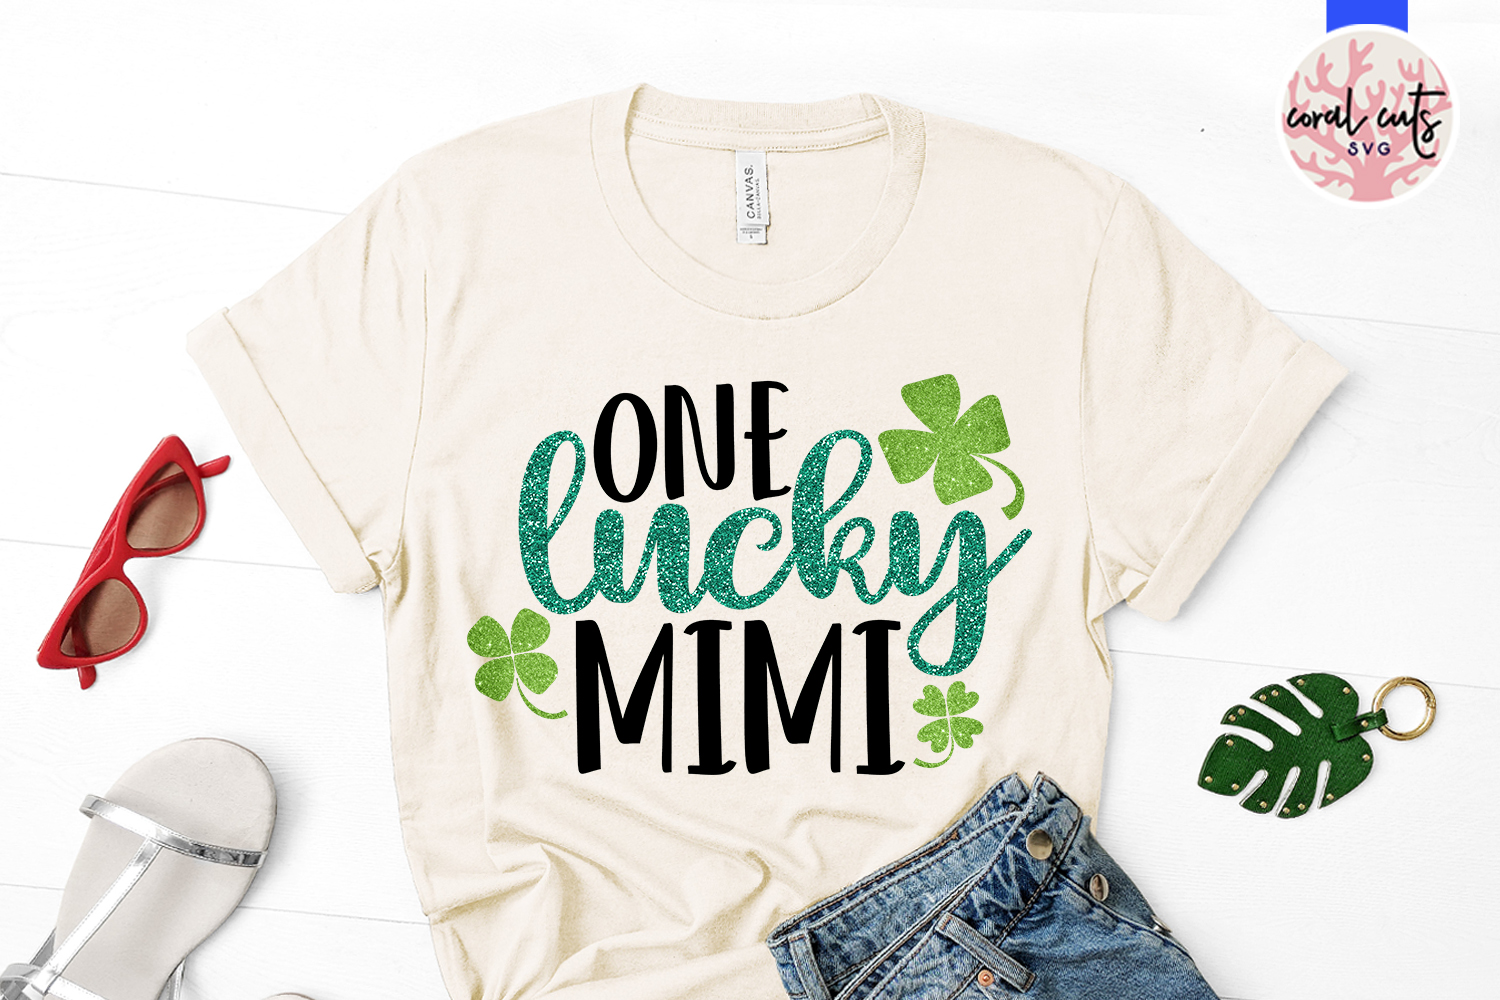 One lucky mimi - St. Patrick's Day SVG EPS DXF PNG example image 2